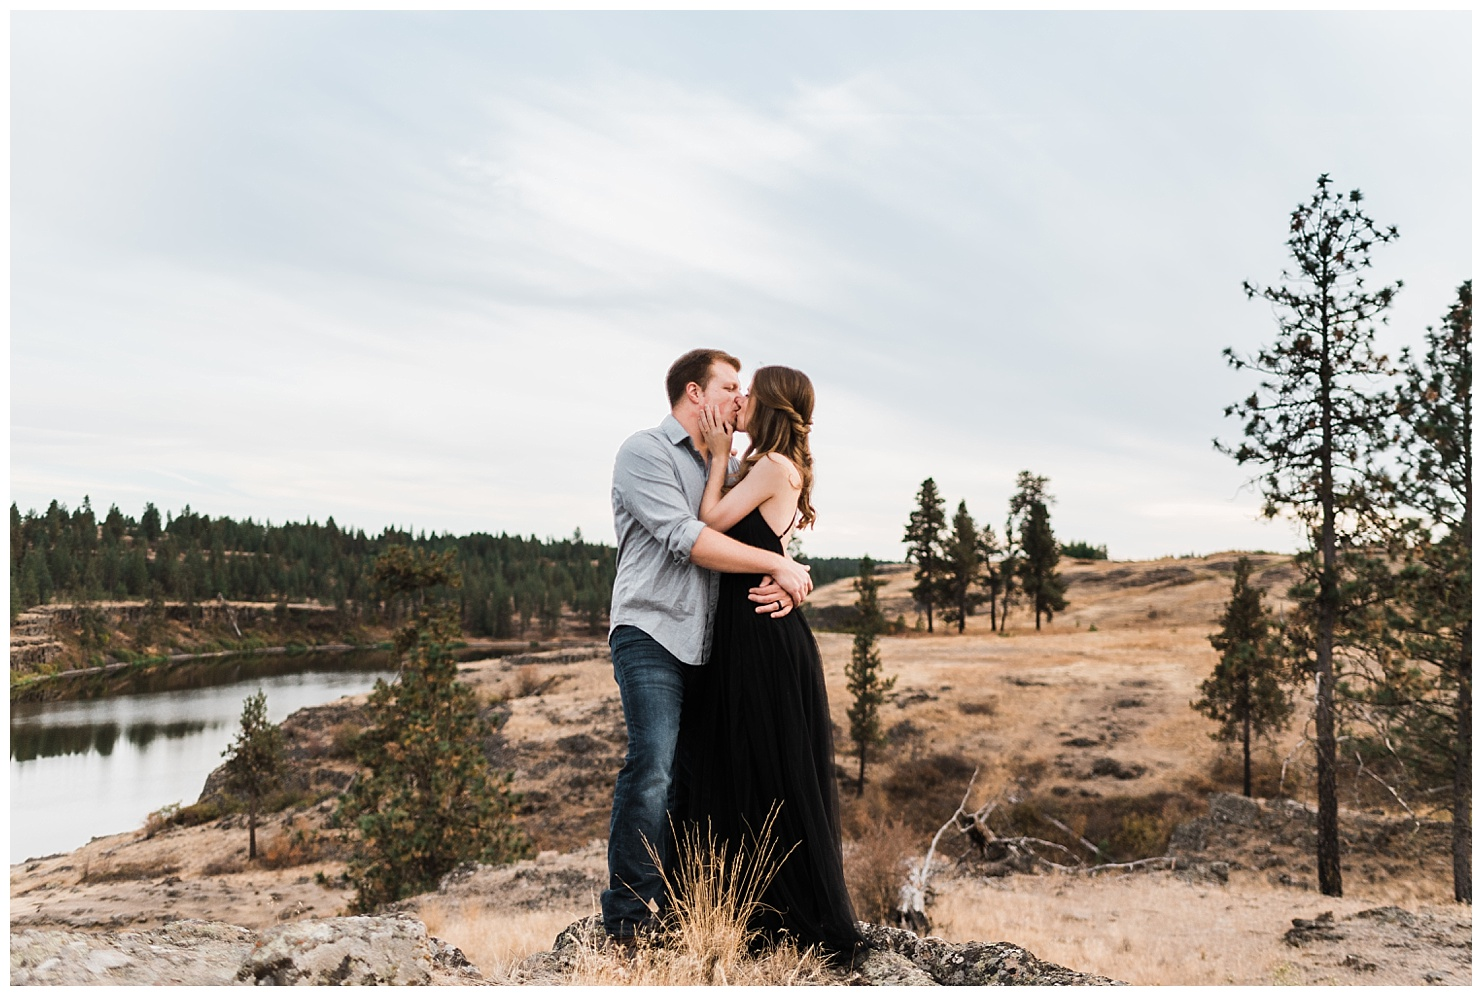 Hog Lake Engagement Session by Washington Adventure Engagement Photographers - Forthright Photo